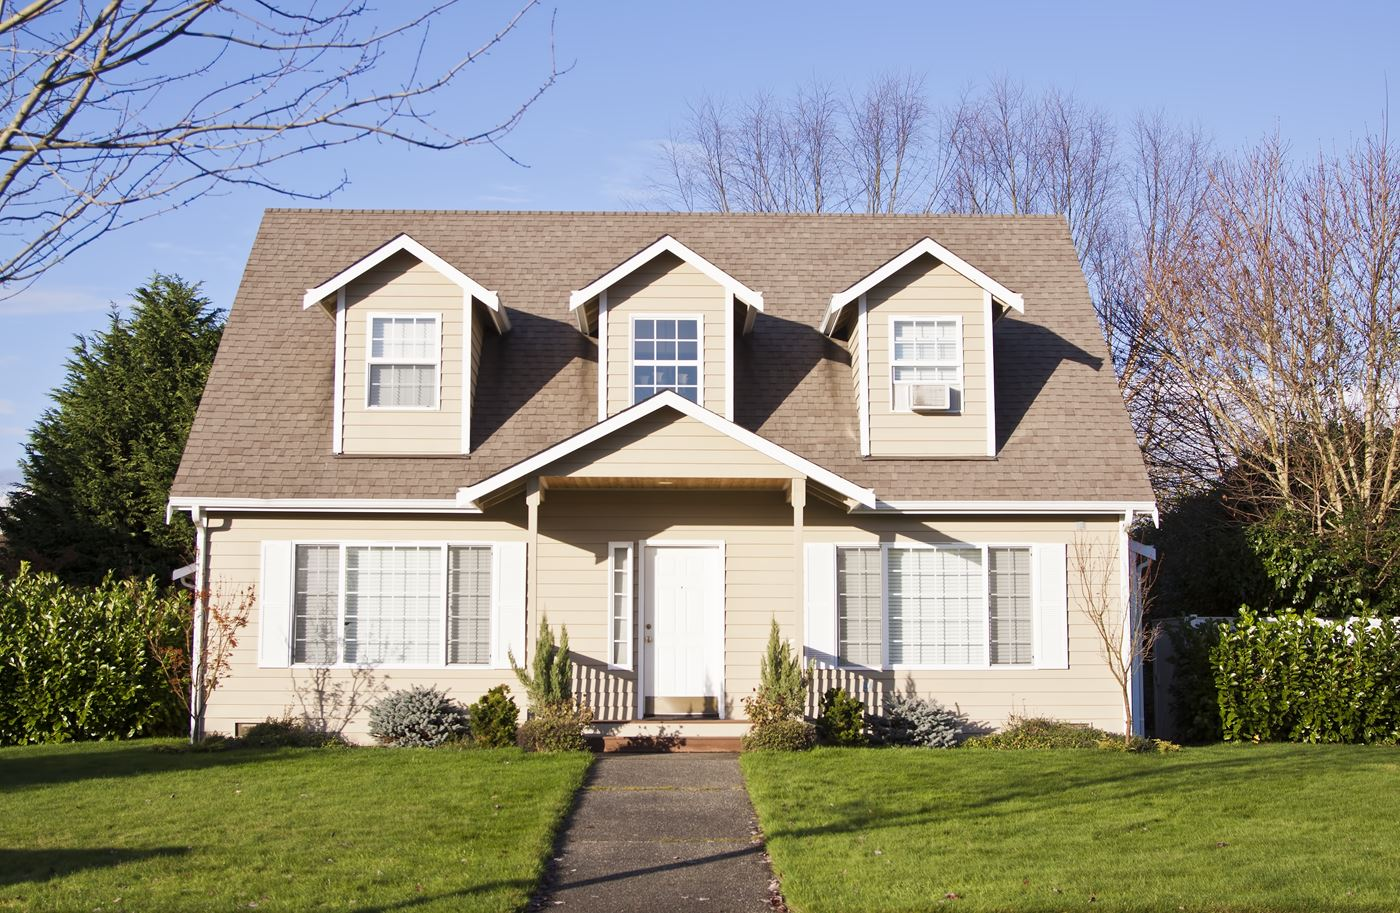 Comparing Types of Shingle Roofing for Your New Roof